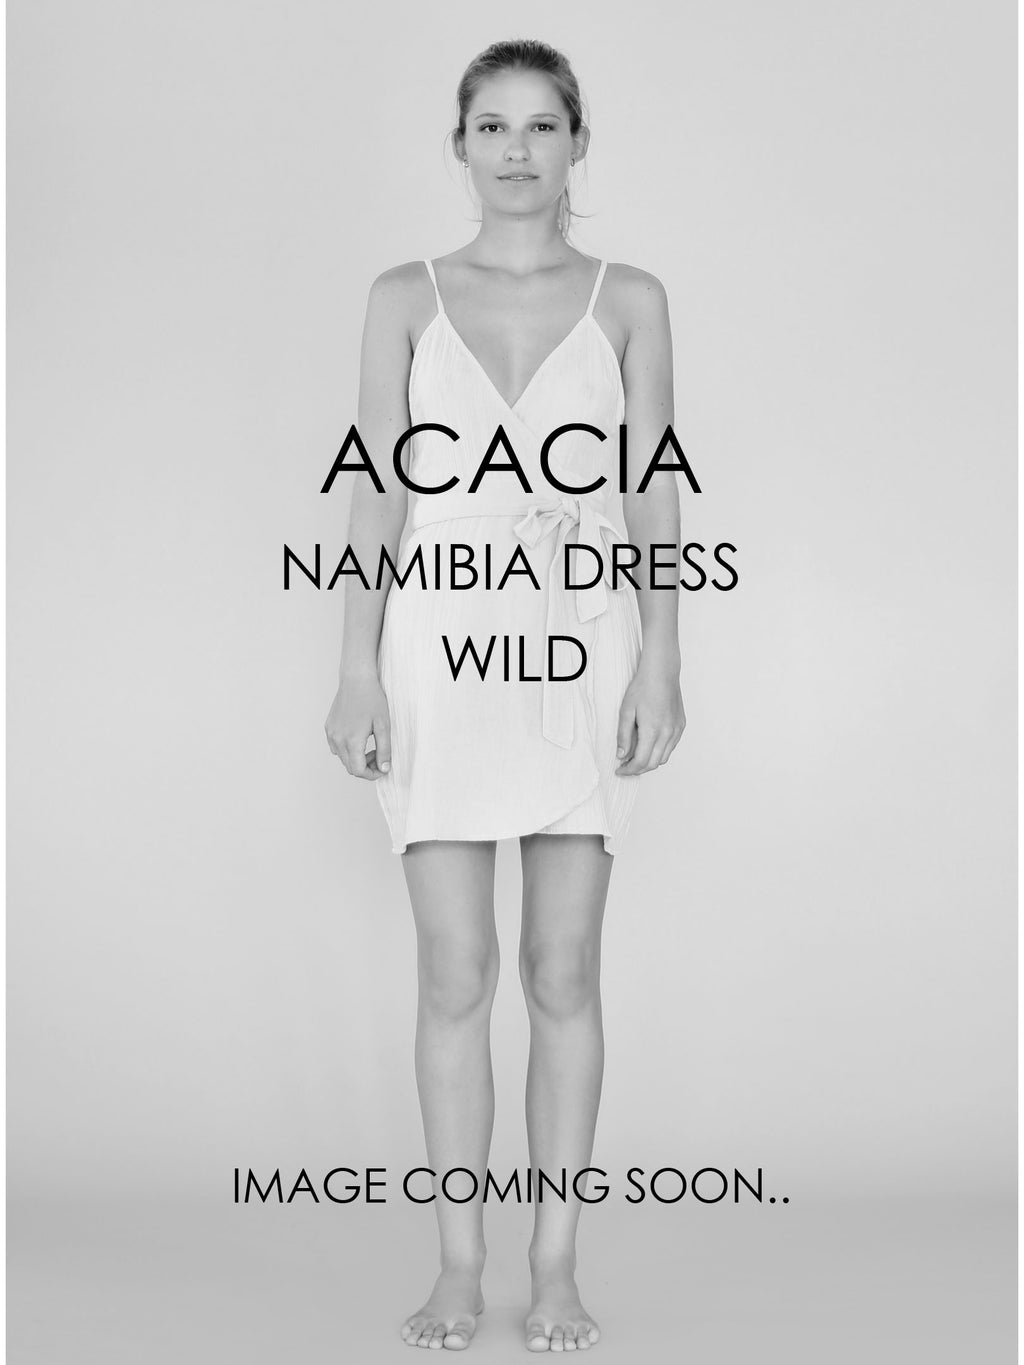 ACACIA Namibia Dress | Wild